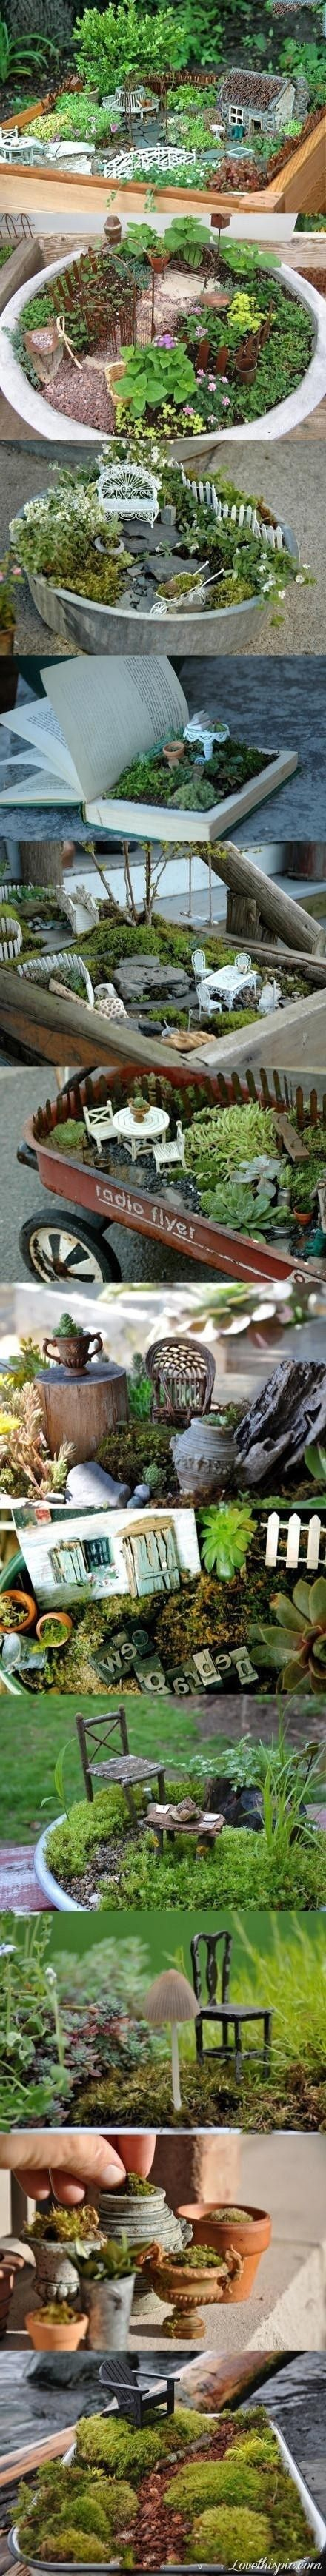 Garden accent.  This would be great for little kids with big imaginations.